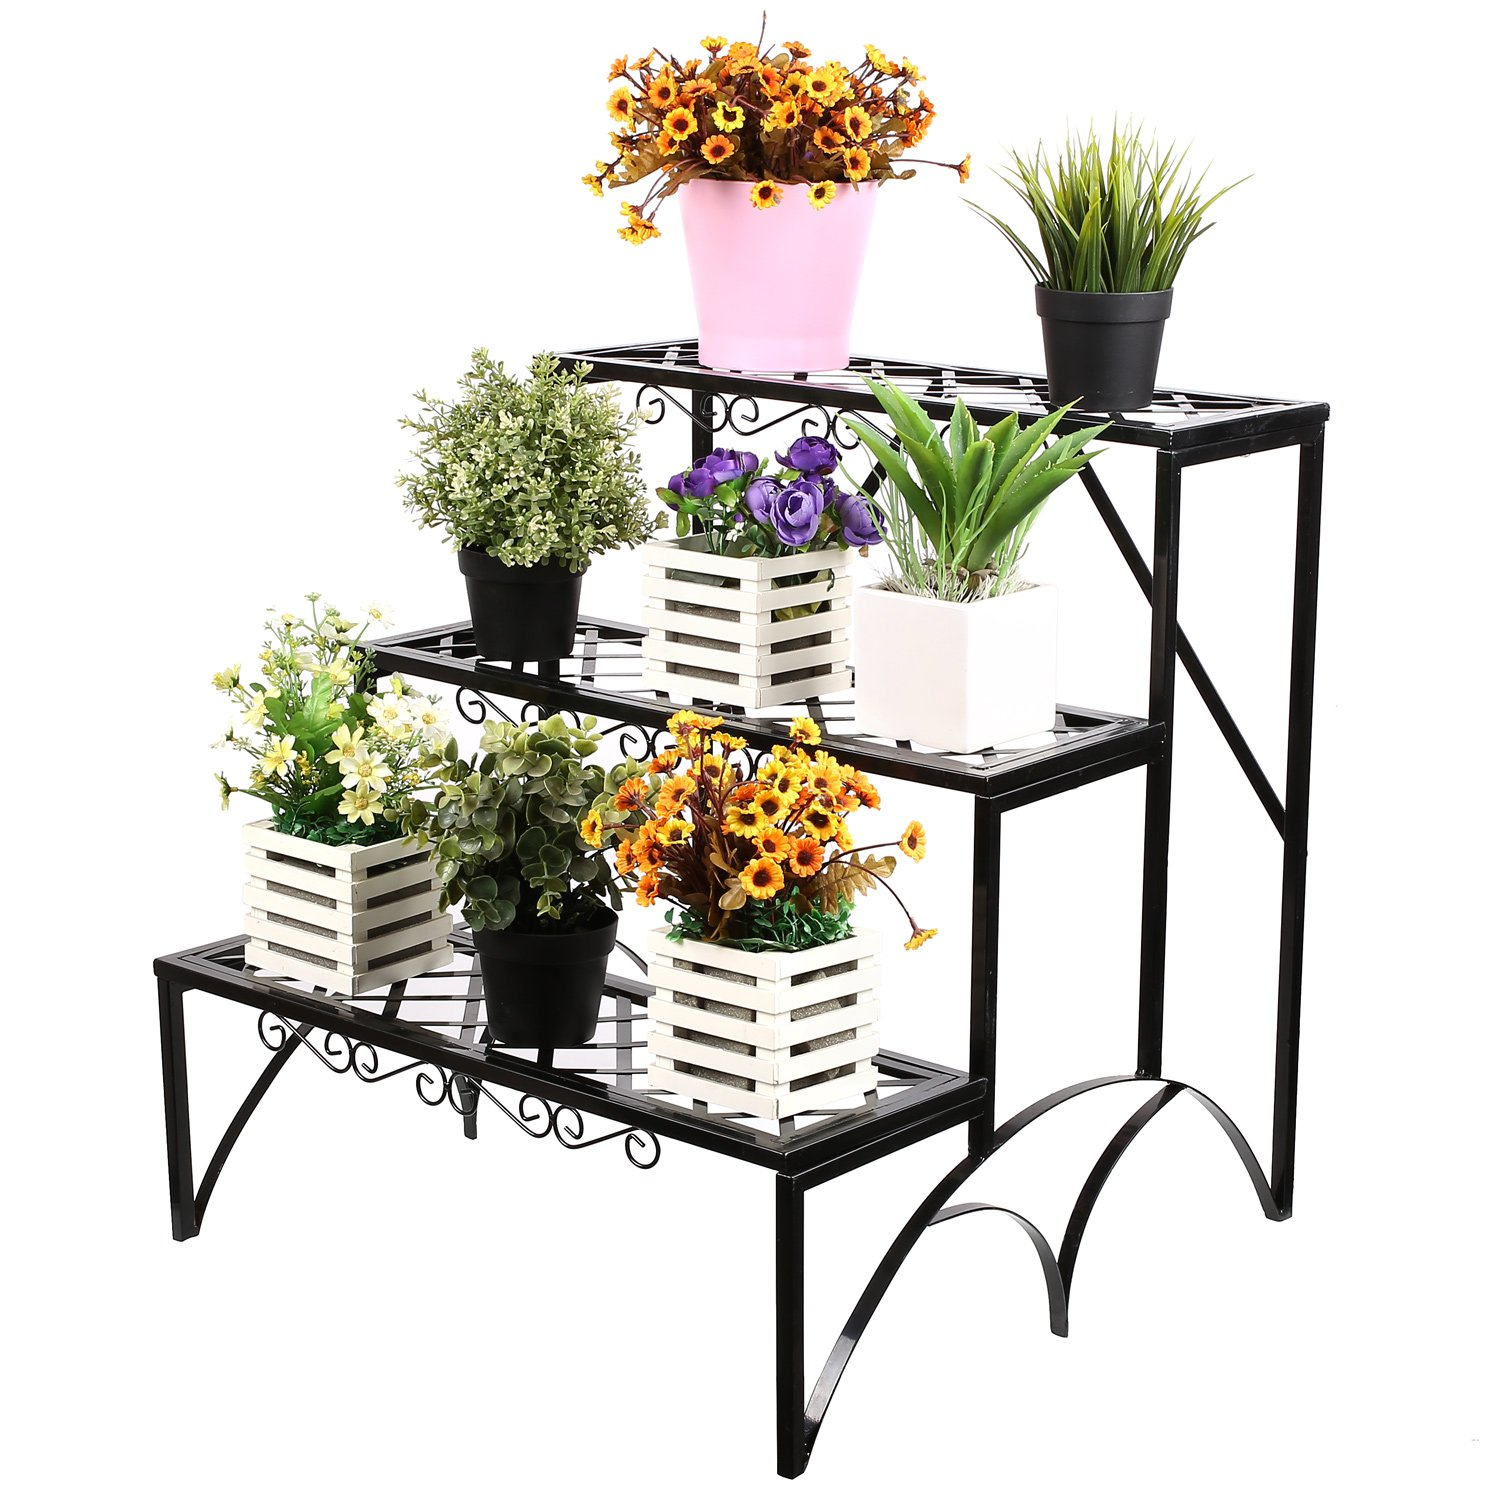 Homfa 3 Tier Plant Stand Metal Garden Pot Display Shelf